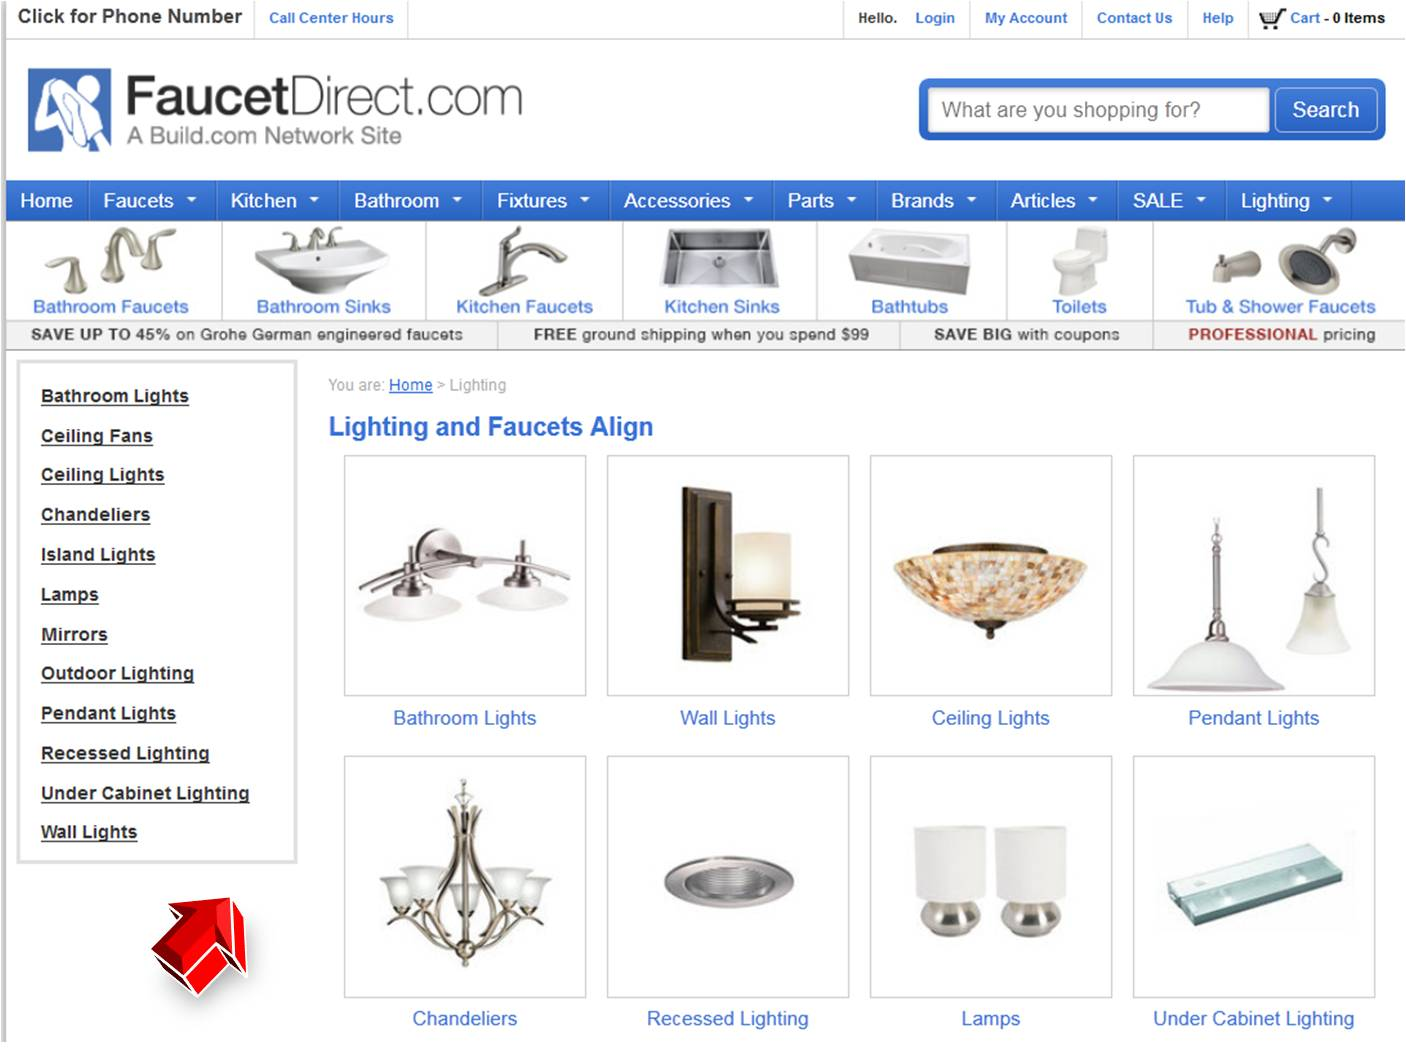 Lighting From Faucet Direct Coupon Code